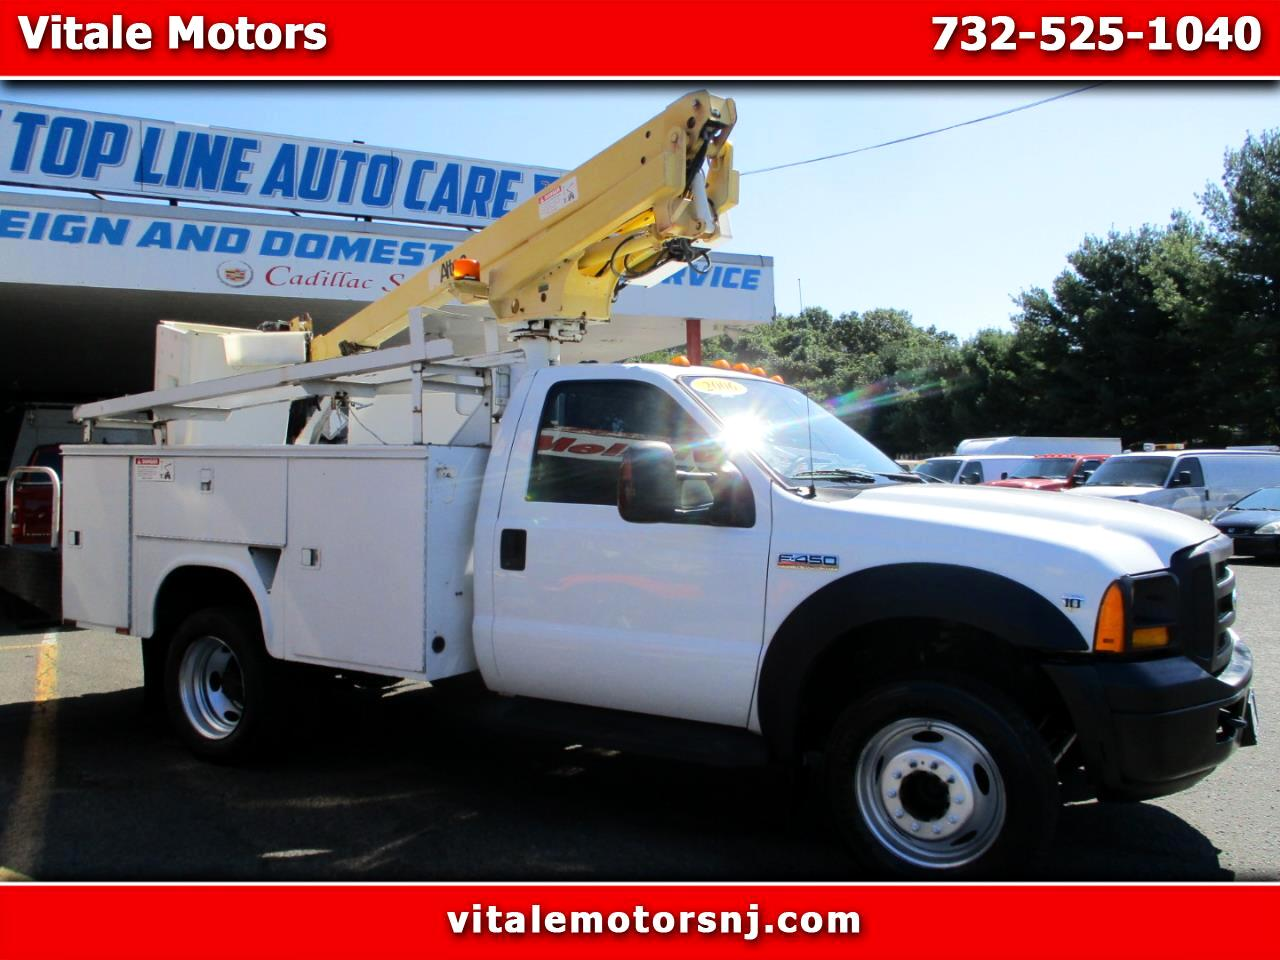 2006 Ford F-450 SD ALTEC BUCKET TRUCK F450 104K MILES